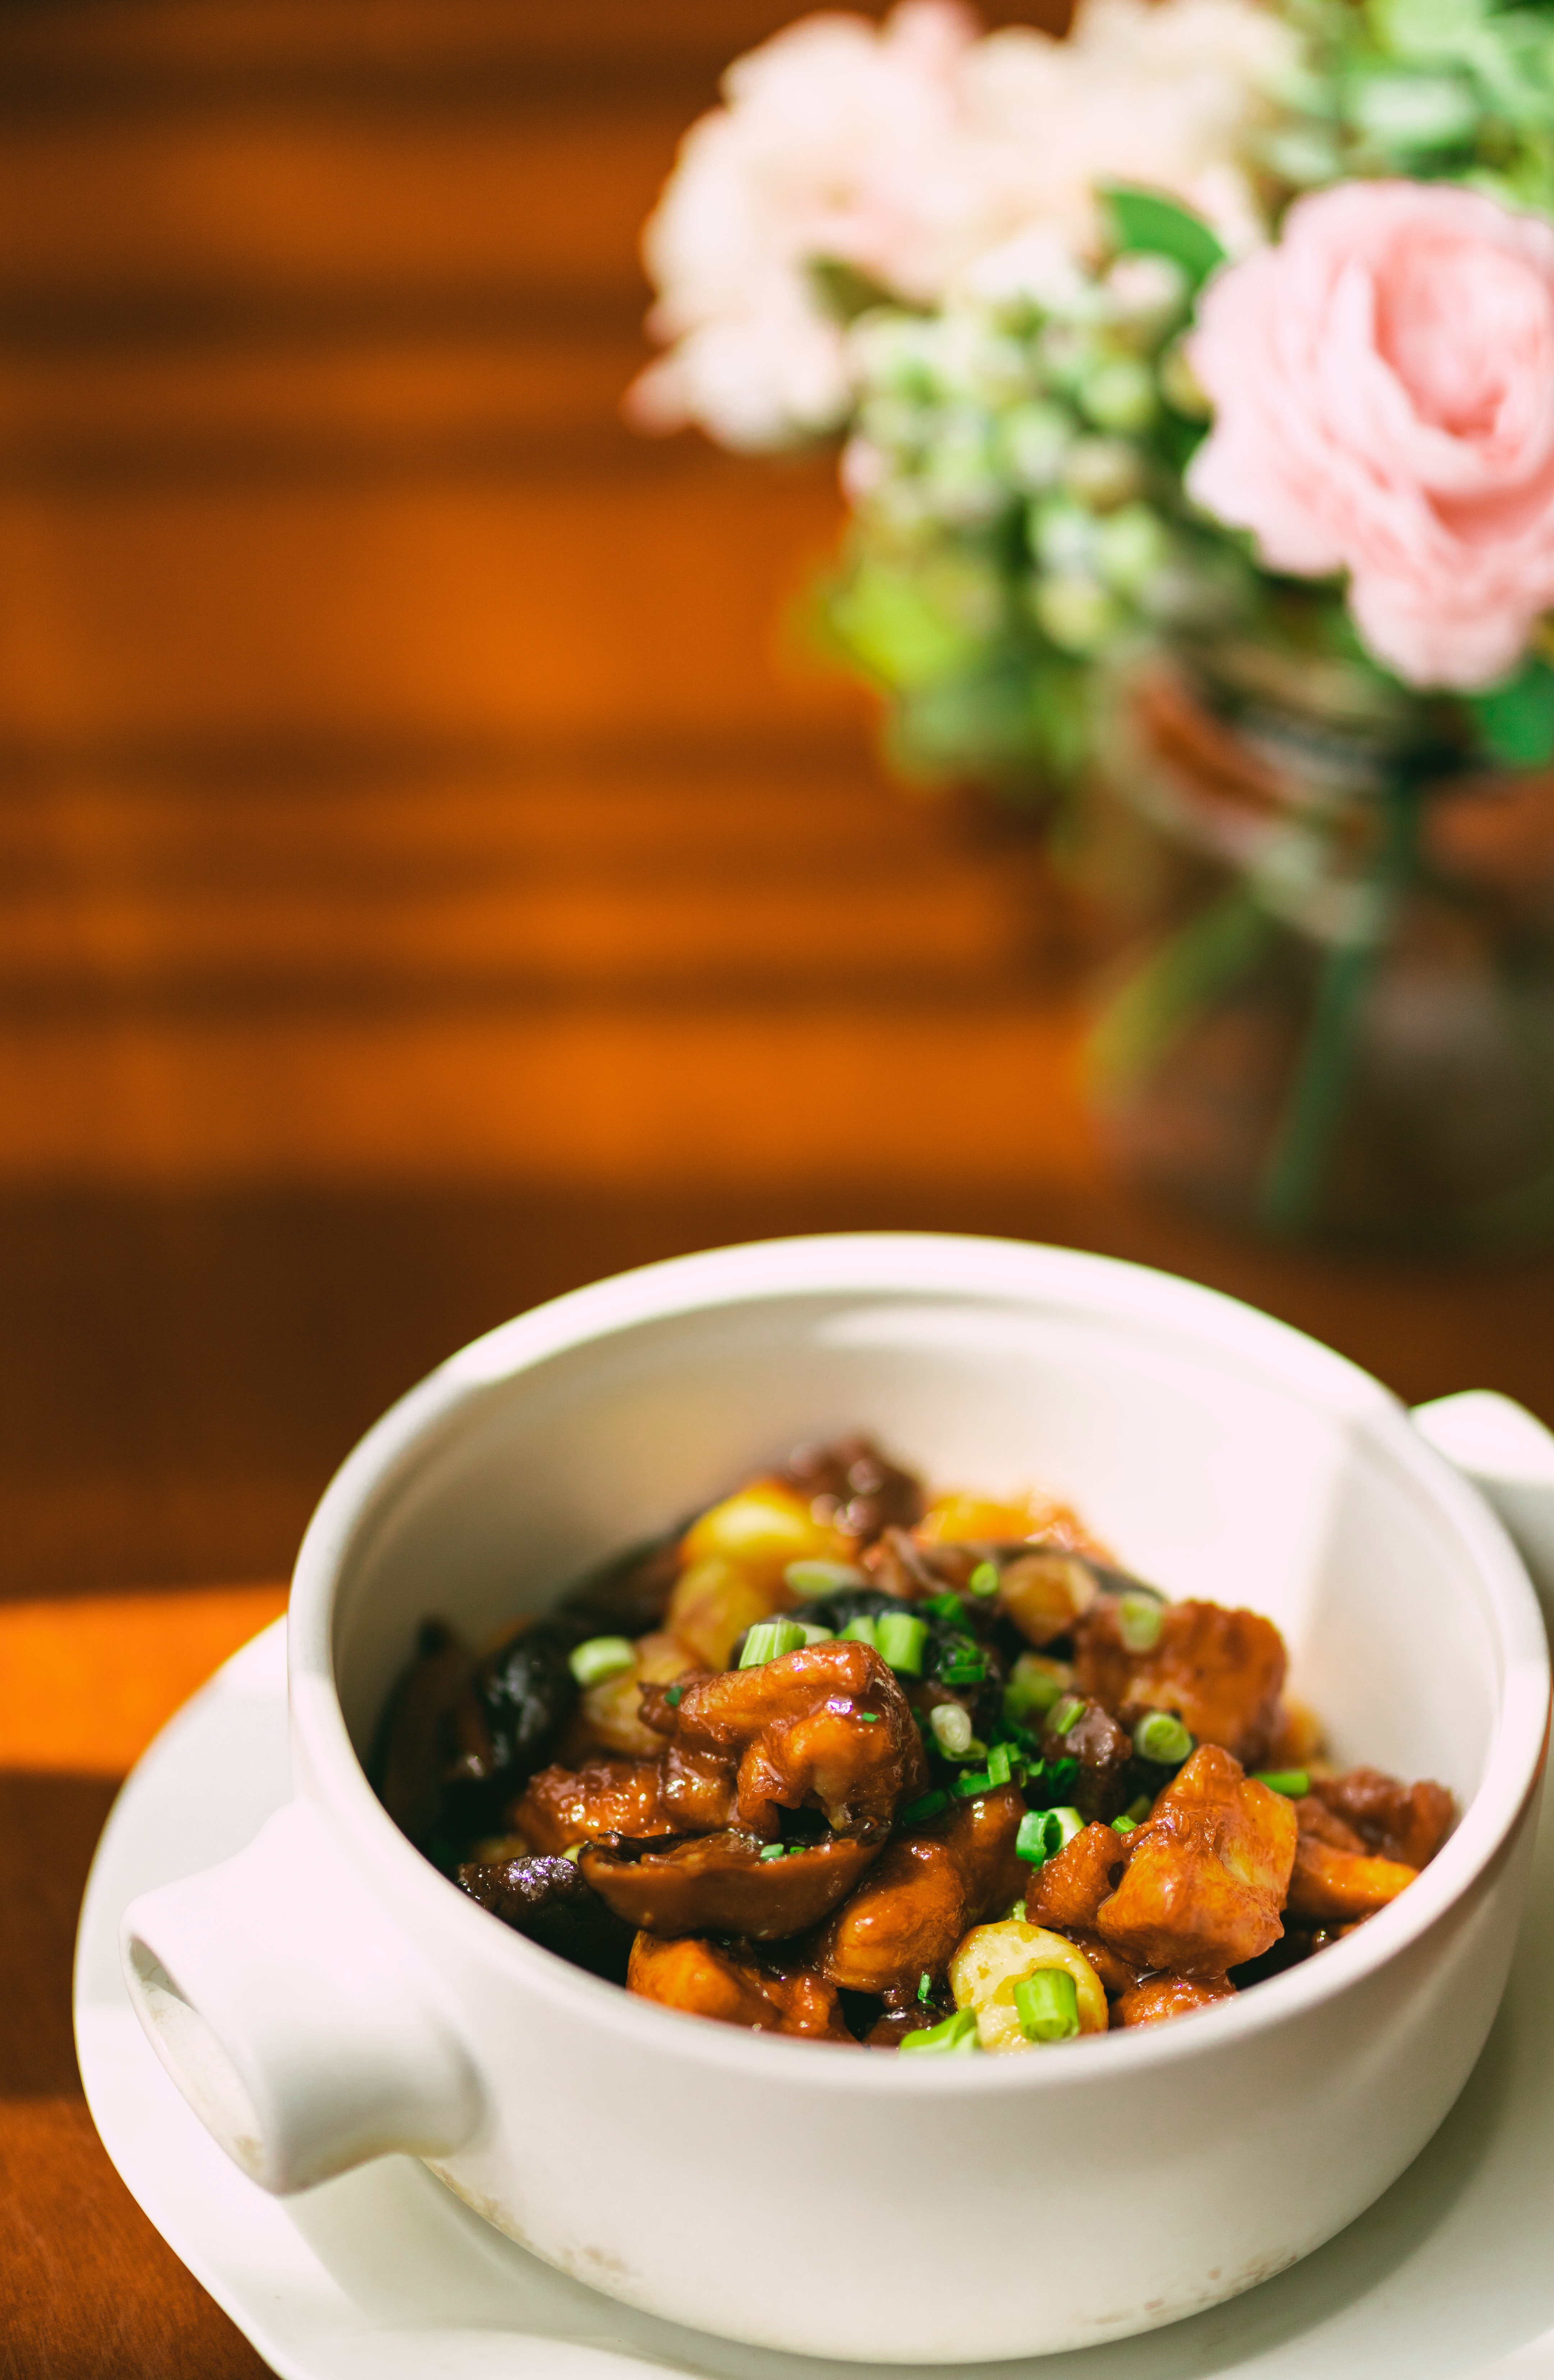 bowl of sweet and sour chicken in a white bowl on a wooden table